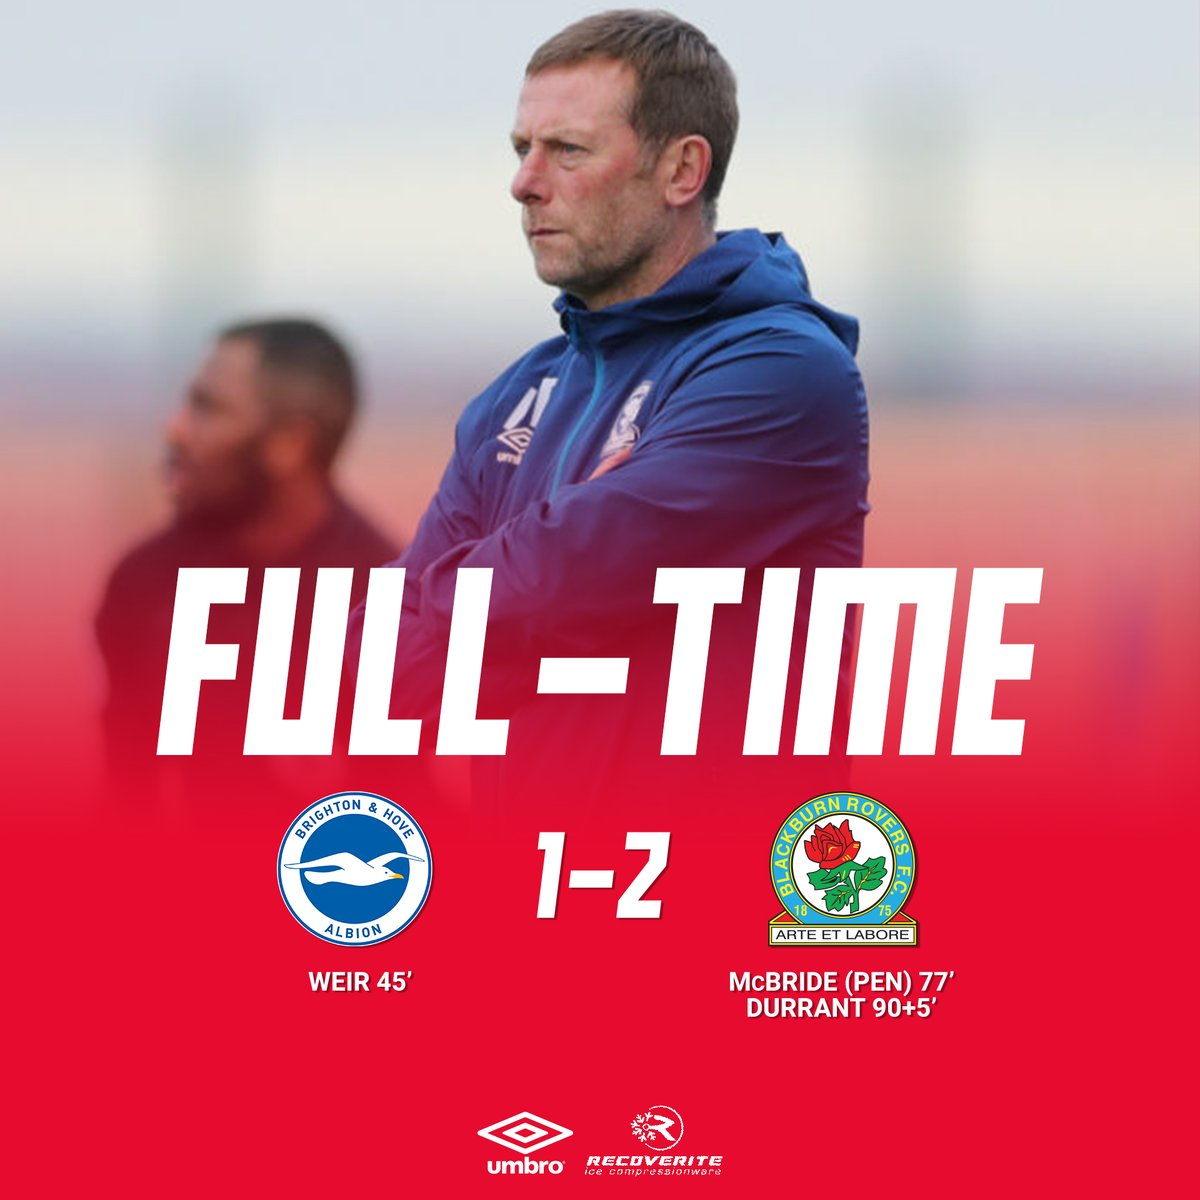 ⏱️ FT: #BHAFC 1-2 #Rovers  Drama right at the very end sees Sam Durrant net a 90th minute winner!  Get in there!  🔵⚪️